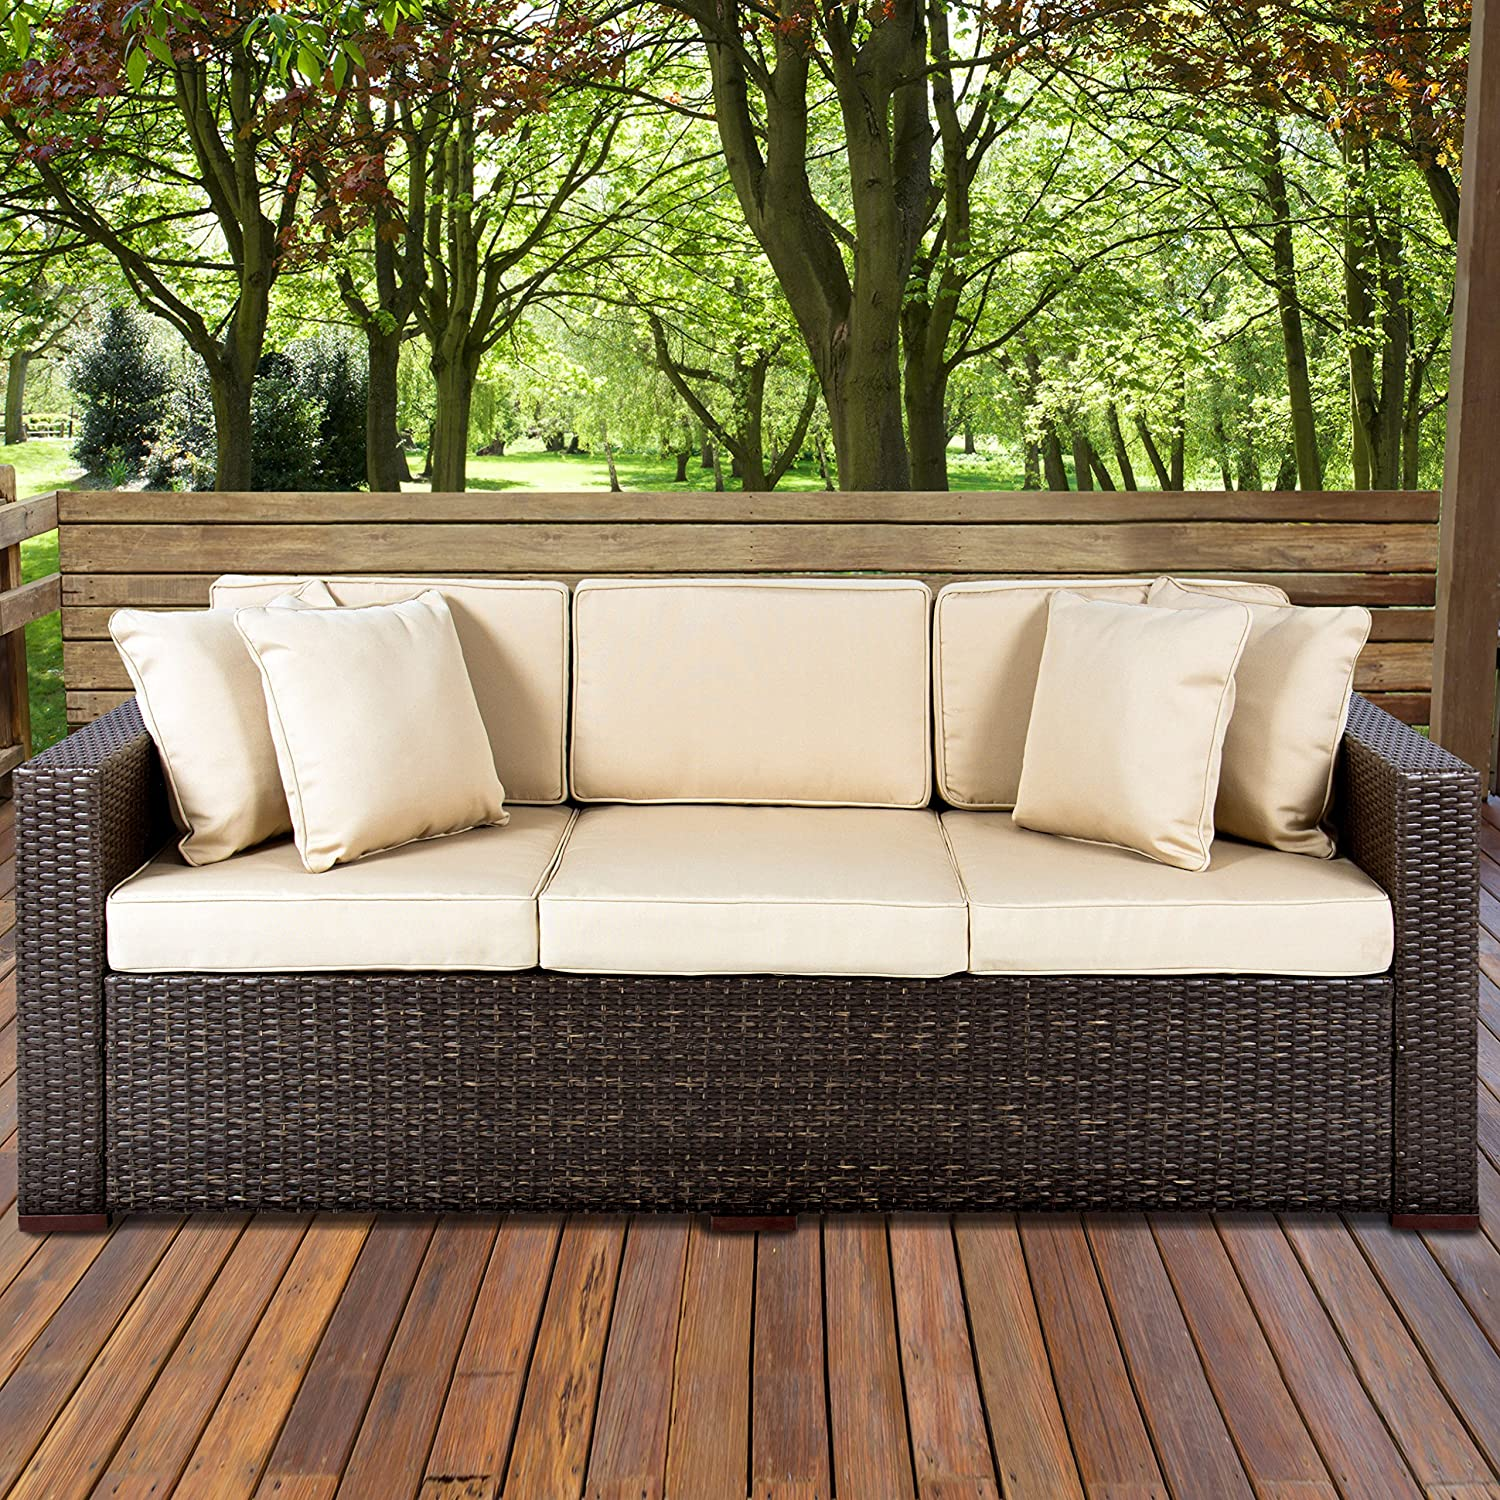 Amazon.com : Best ChoiceProducts Outdoor Wicker Patio Furniture Sofa ...